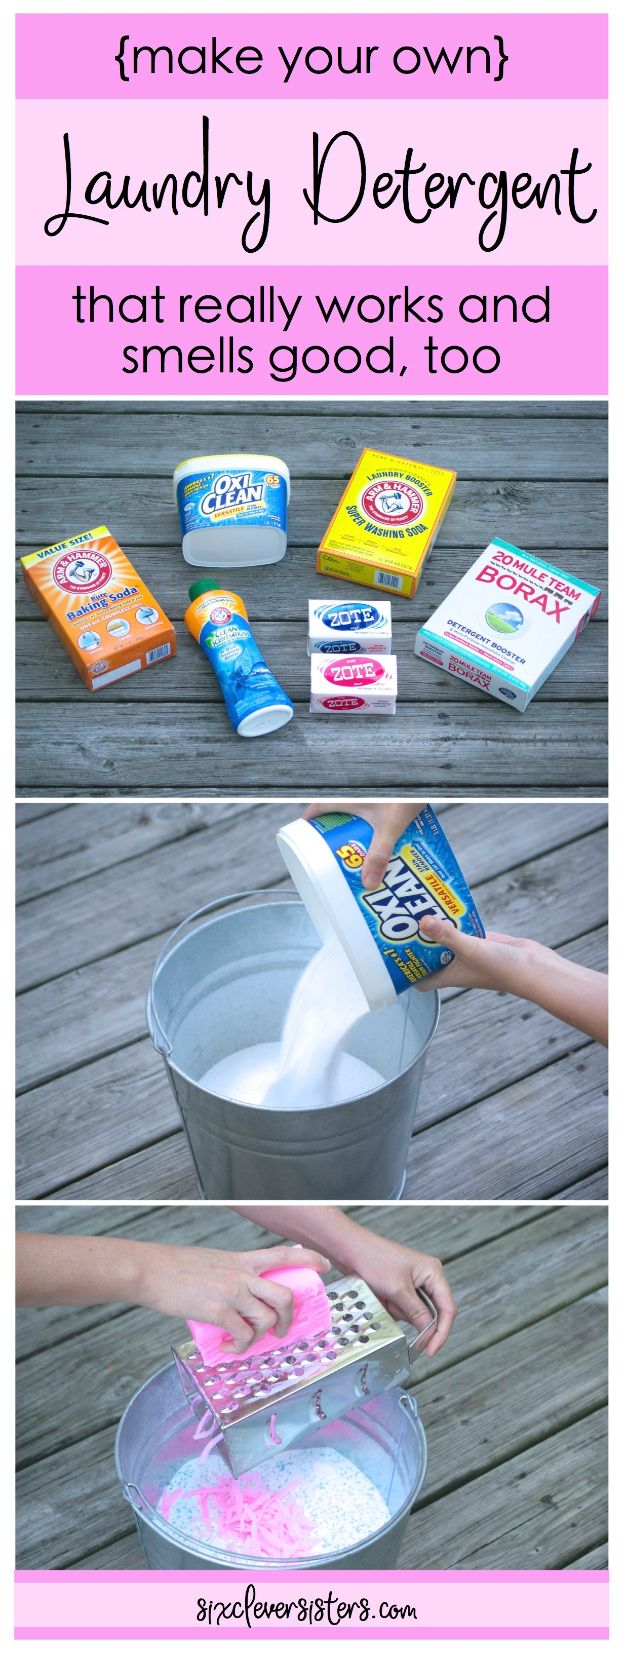 Laundry Detergent Recipes - Make Your Own Powdered Laundry Detergent - DIY Detergents and Cleaning Recipe Tutorials for Homemade Inexpensive Cleaners You Can Make At Home - Scented Powder and Liquid for He Washer - Save Money With These Cheap Ideas - Natural Products With Essential Oils - Baby, Sensitive Skin Detergent Free Ideas http://diyjoy.com/diy-laundry-detergent-recipes